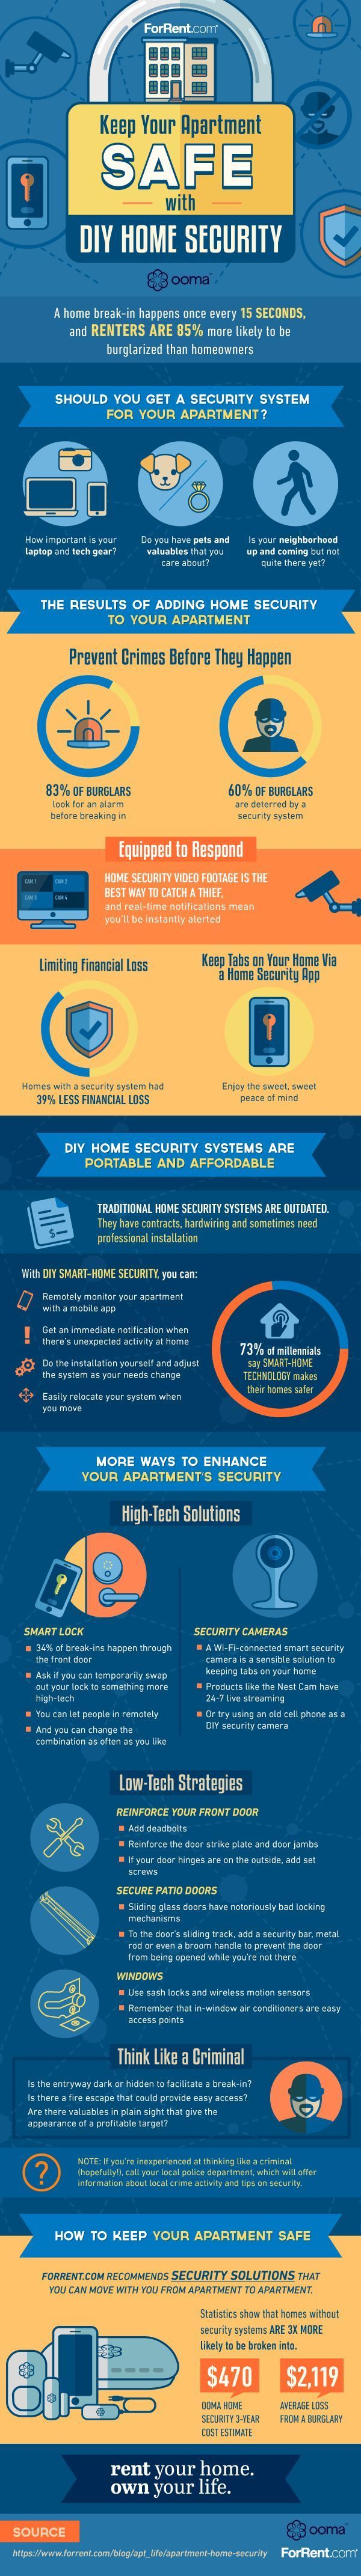 Keeping Your Apartment Safe With Diy Home Security Diy Home